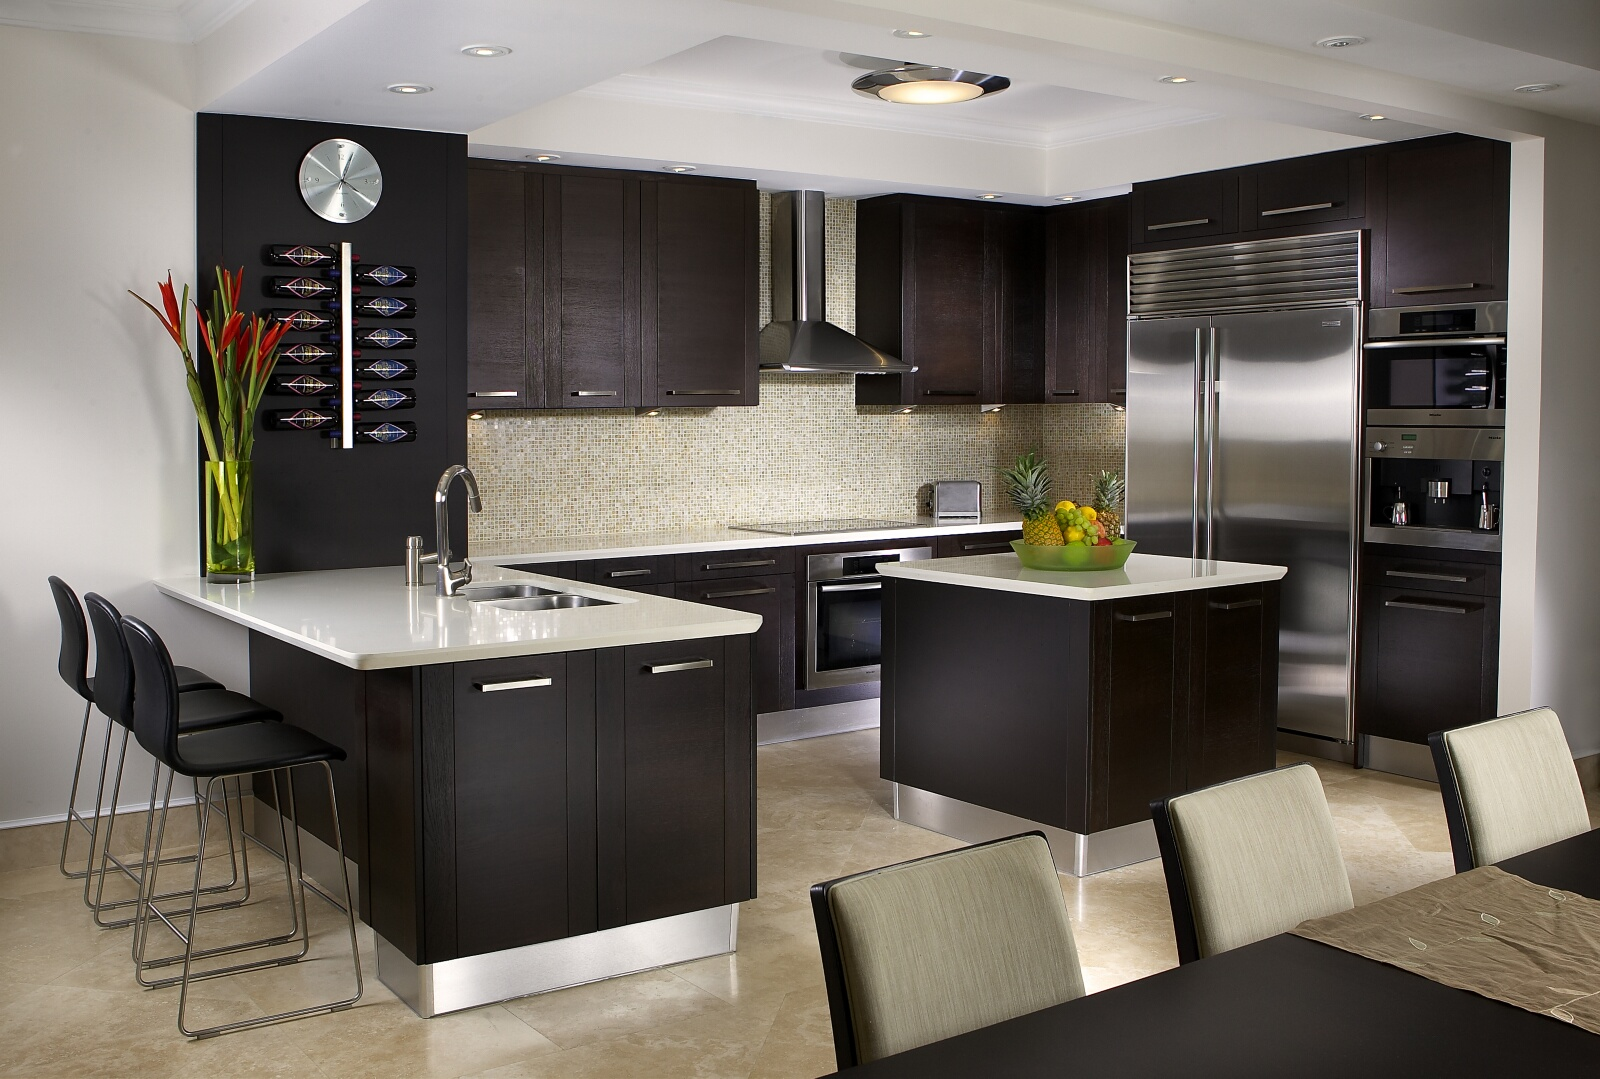 Kitchen Design Ideas: Kitchen Interior Design Services Miami Florida